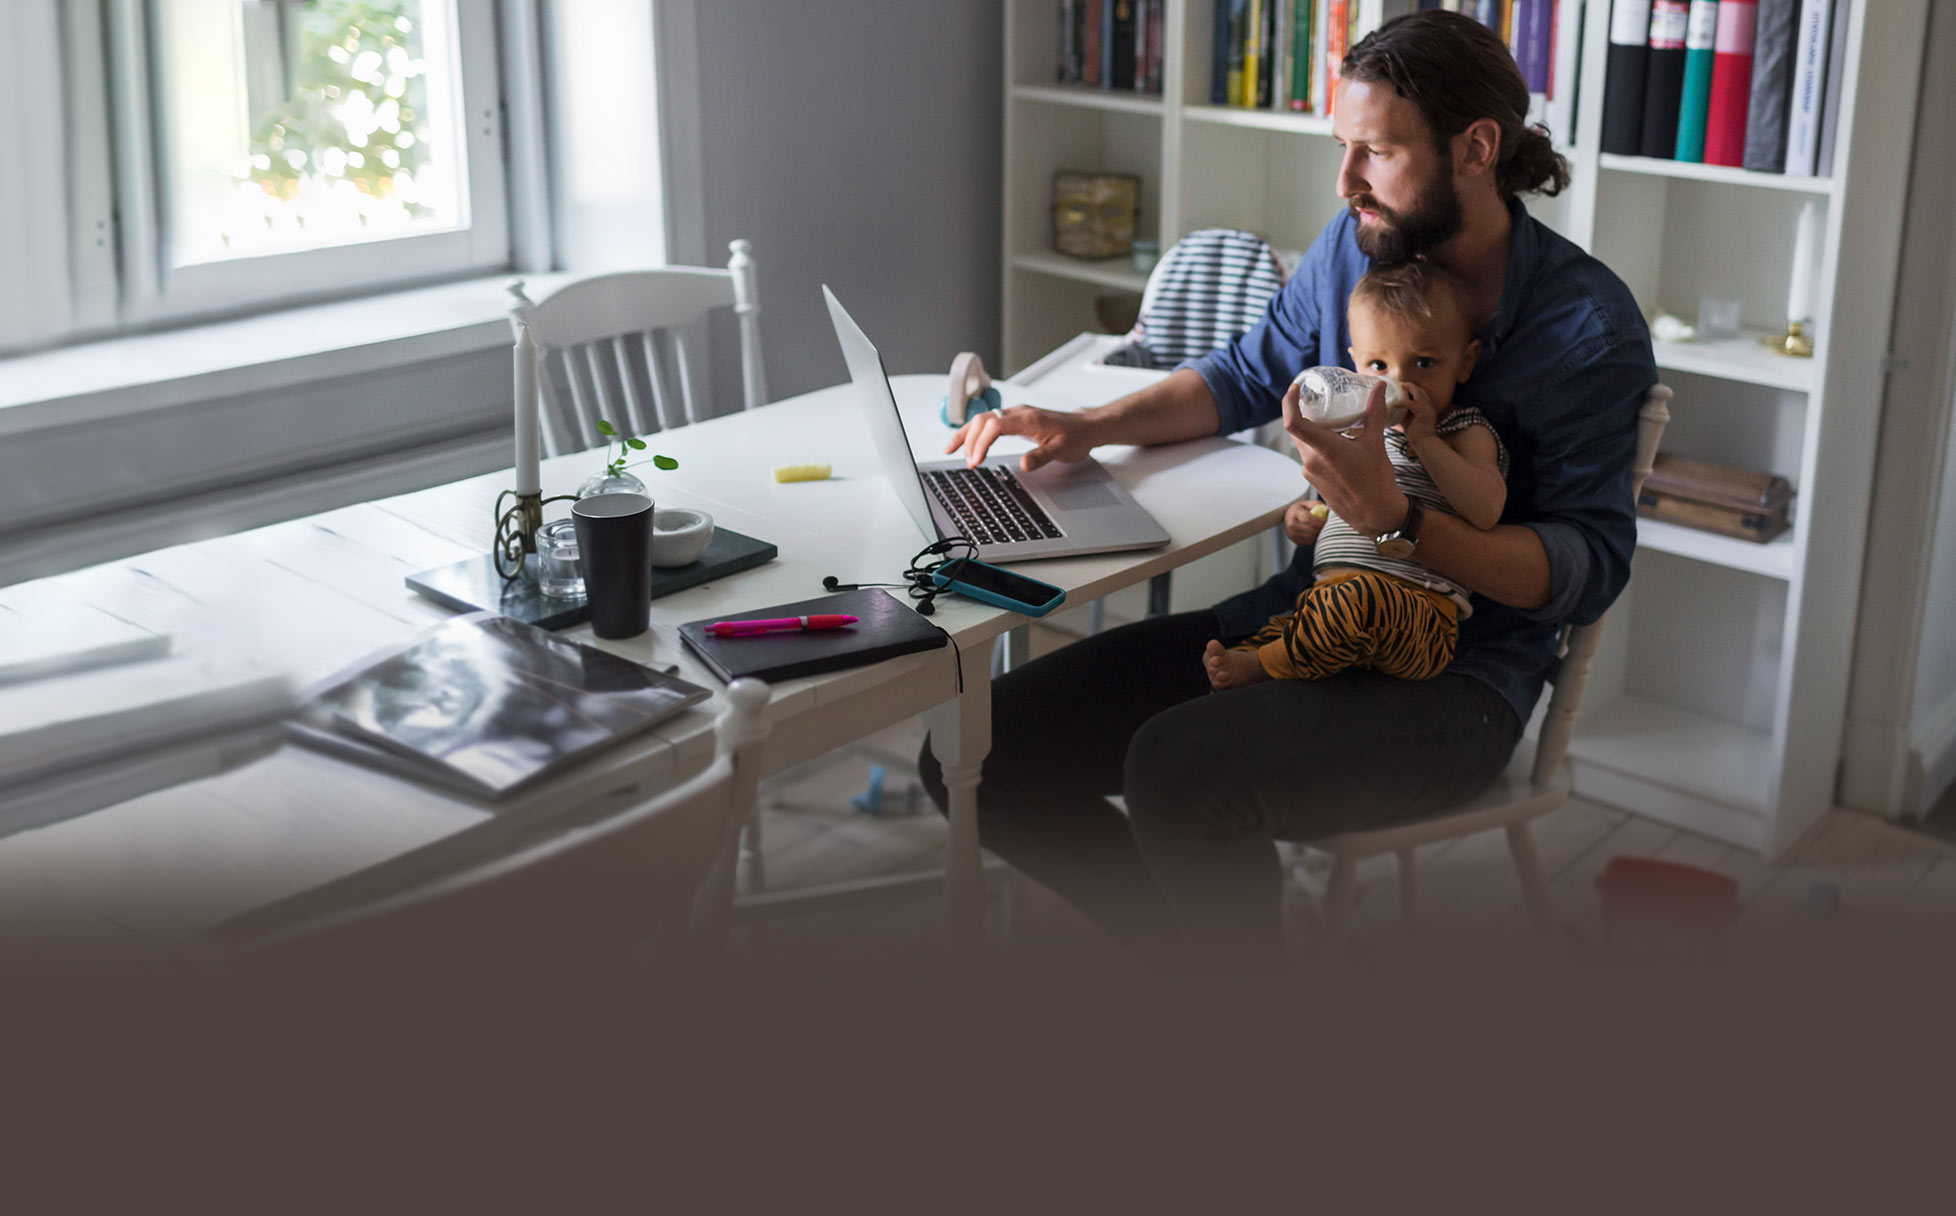 Man working at desk with baby